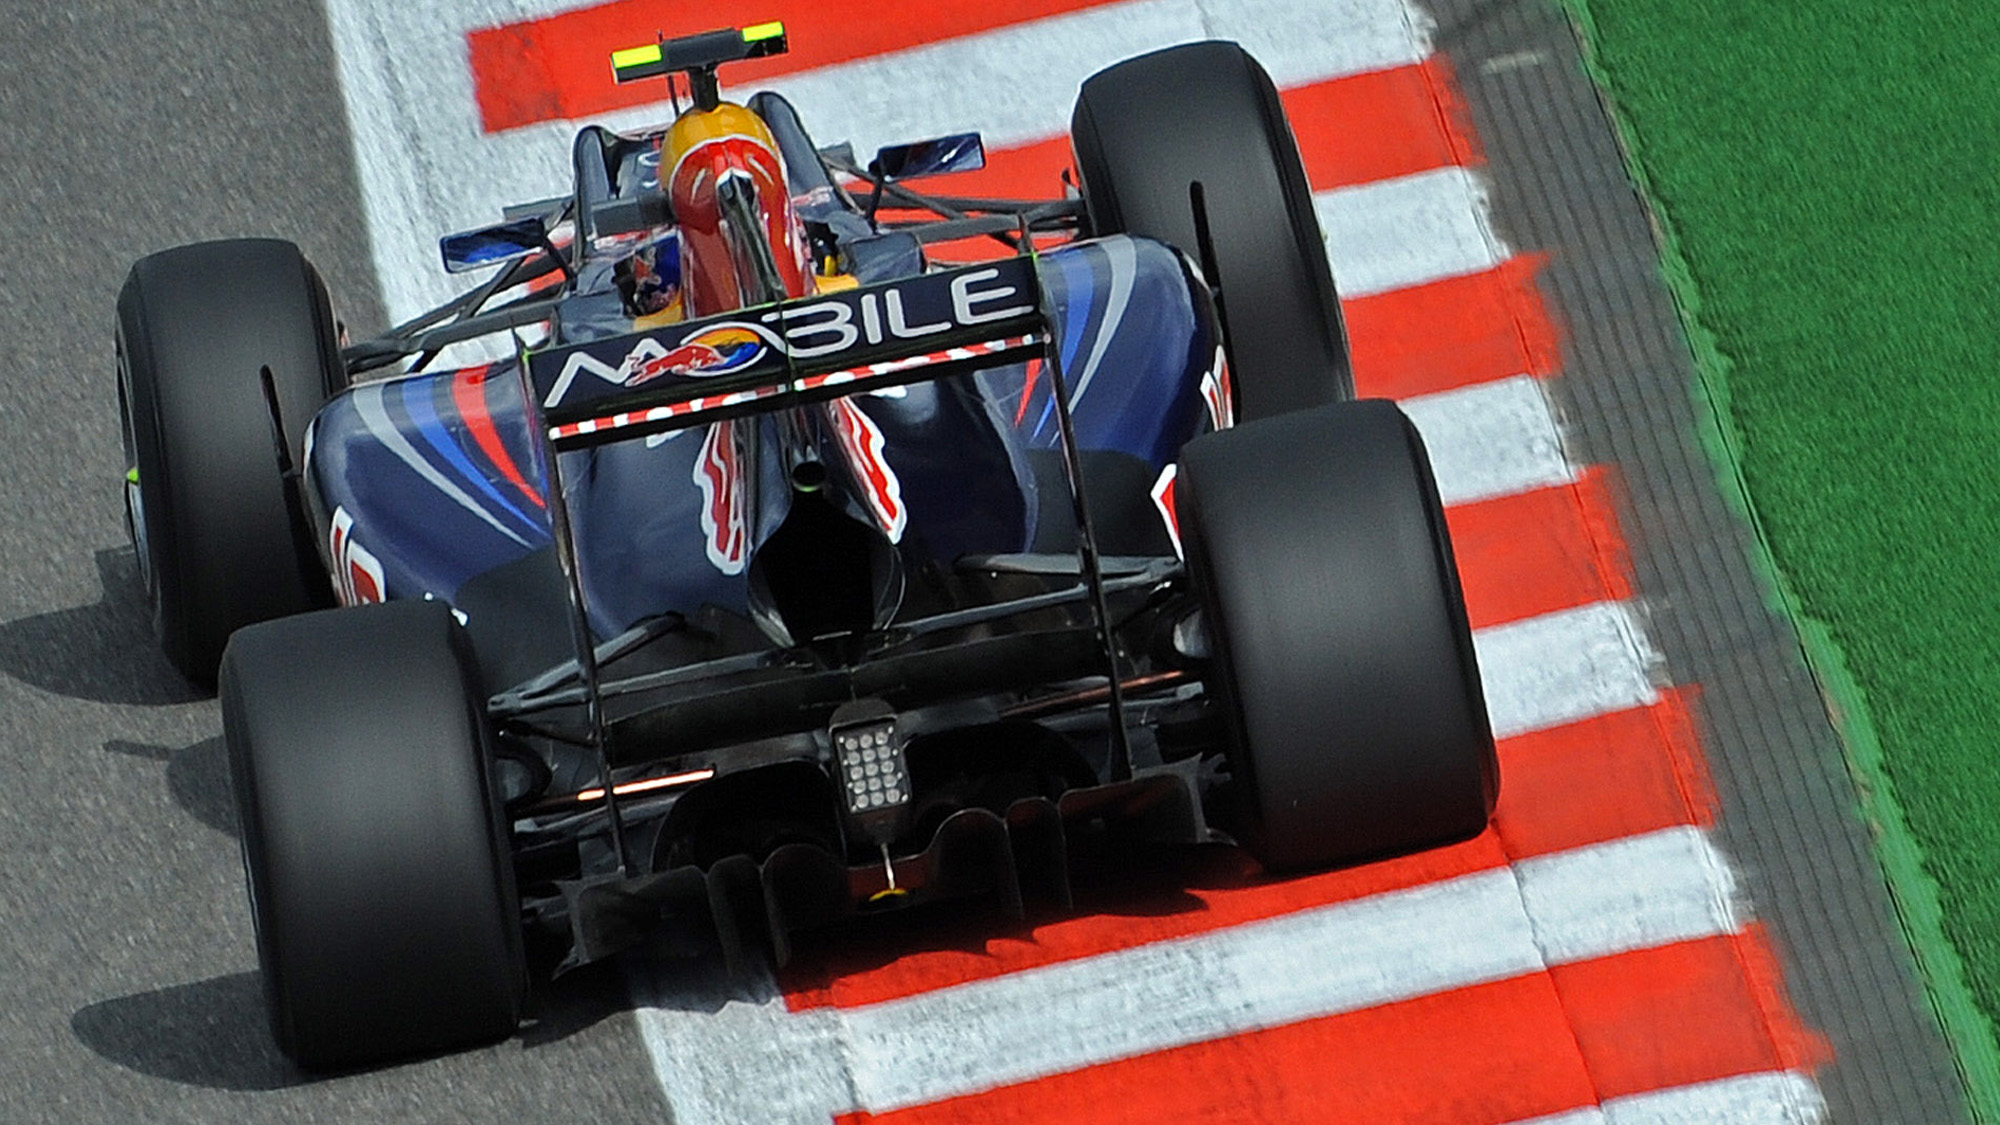 Rear view of Mark Webber's Red Bull at the 2010 Belgian Grand Prix at Spa